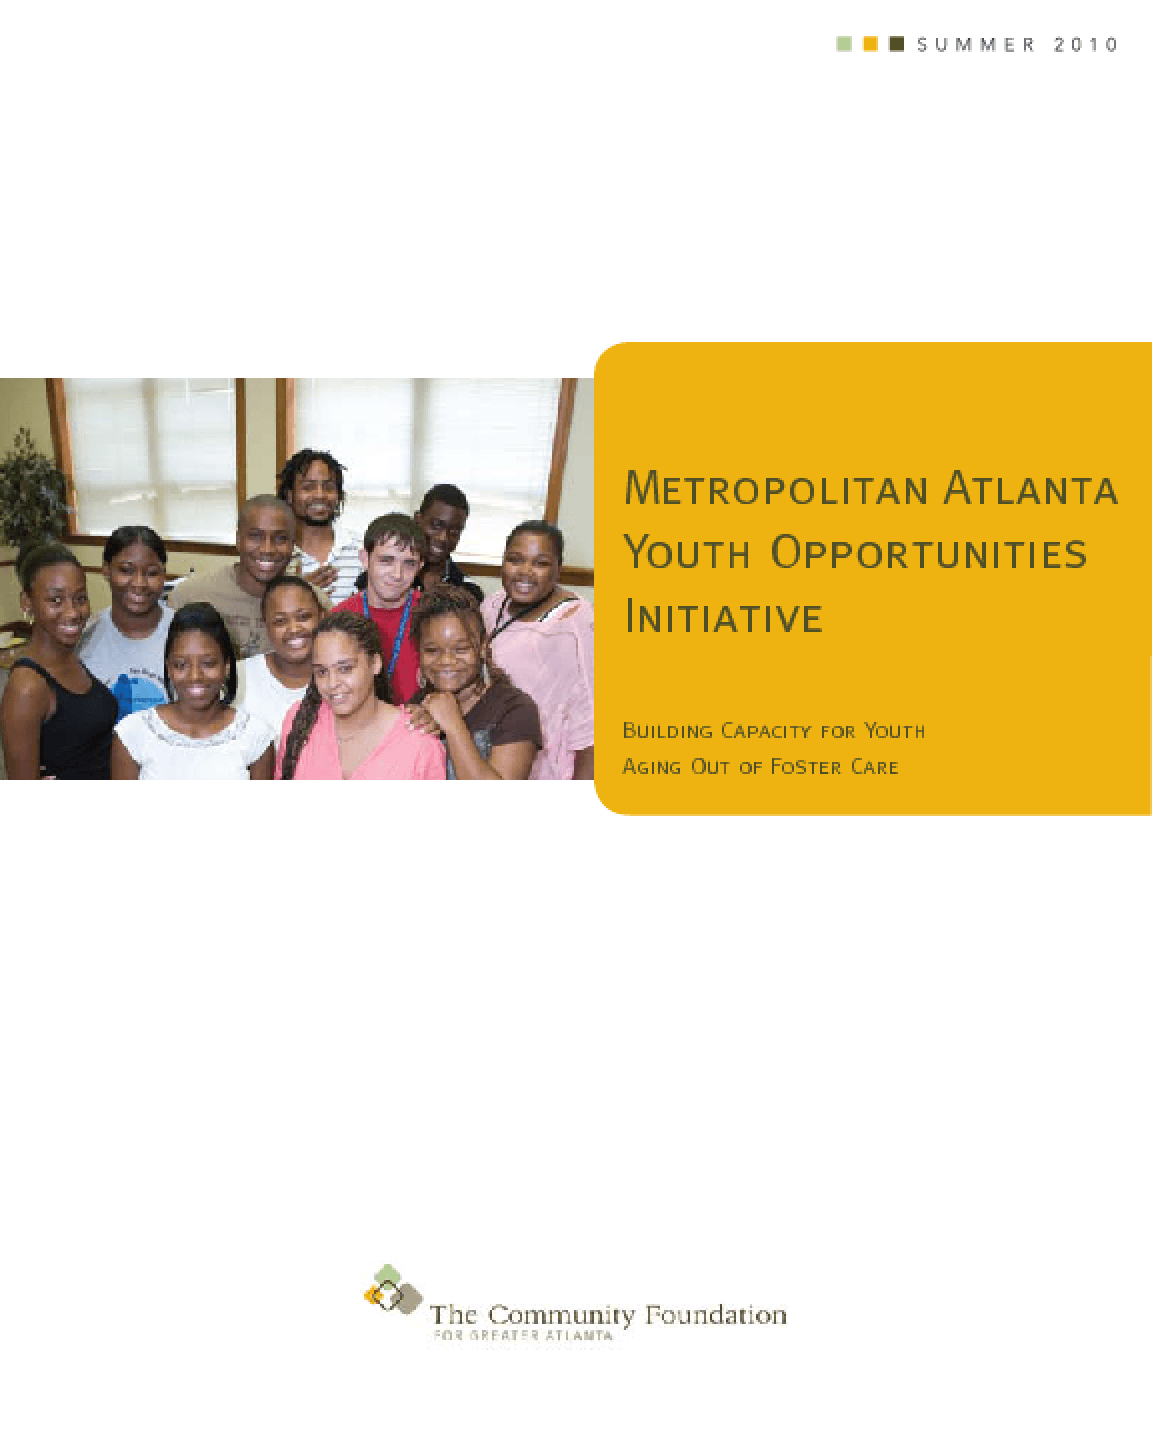 Metropolitan Atlanta Youth Opportunities Initiative: Building Capacity for Youth Aging Out of Foster Care